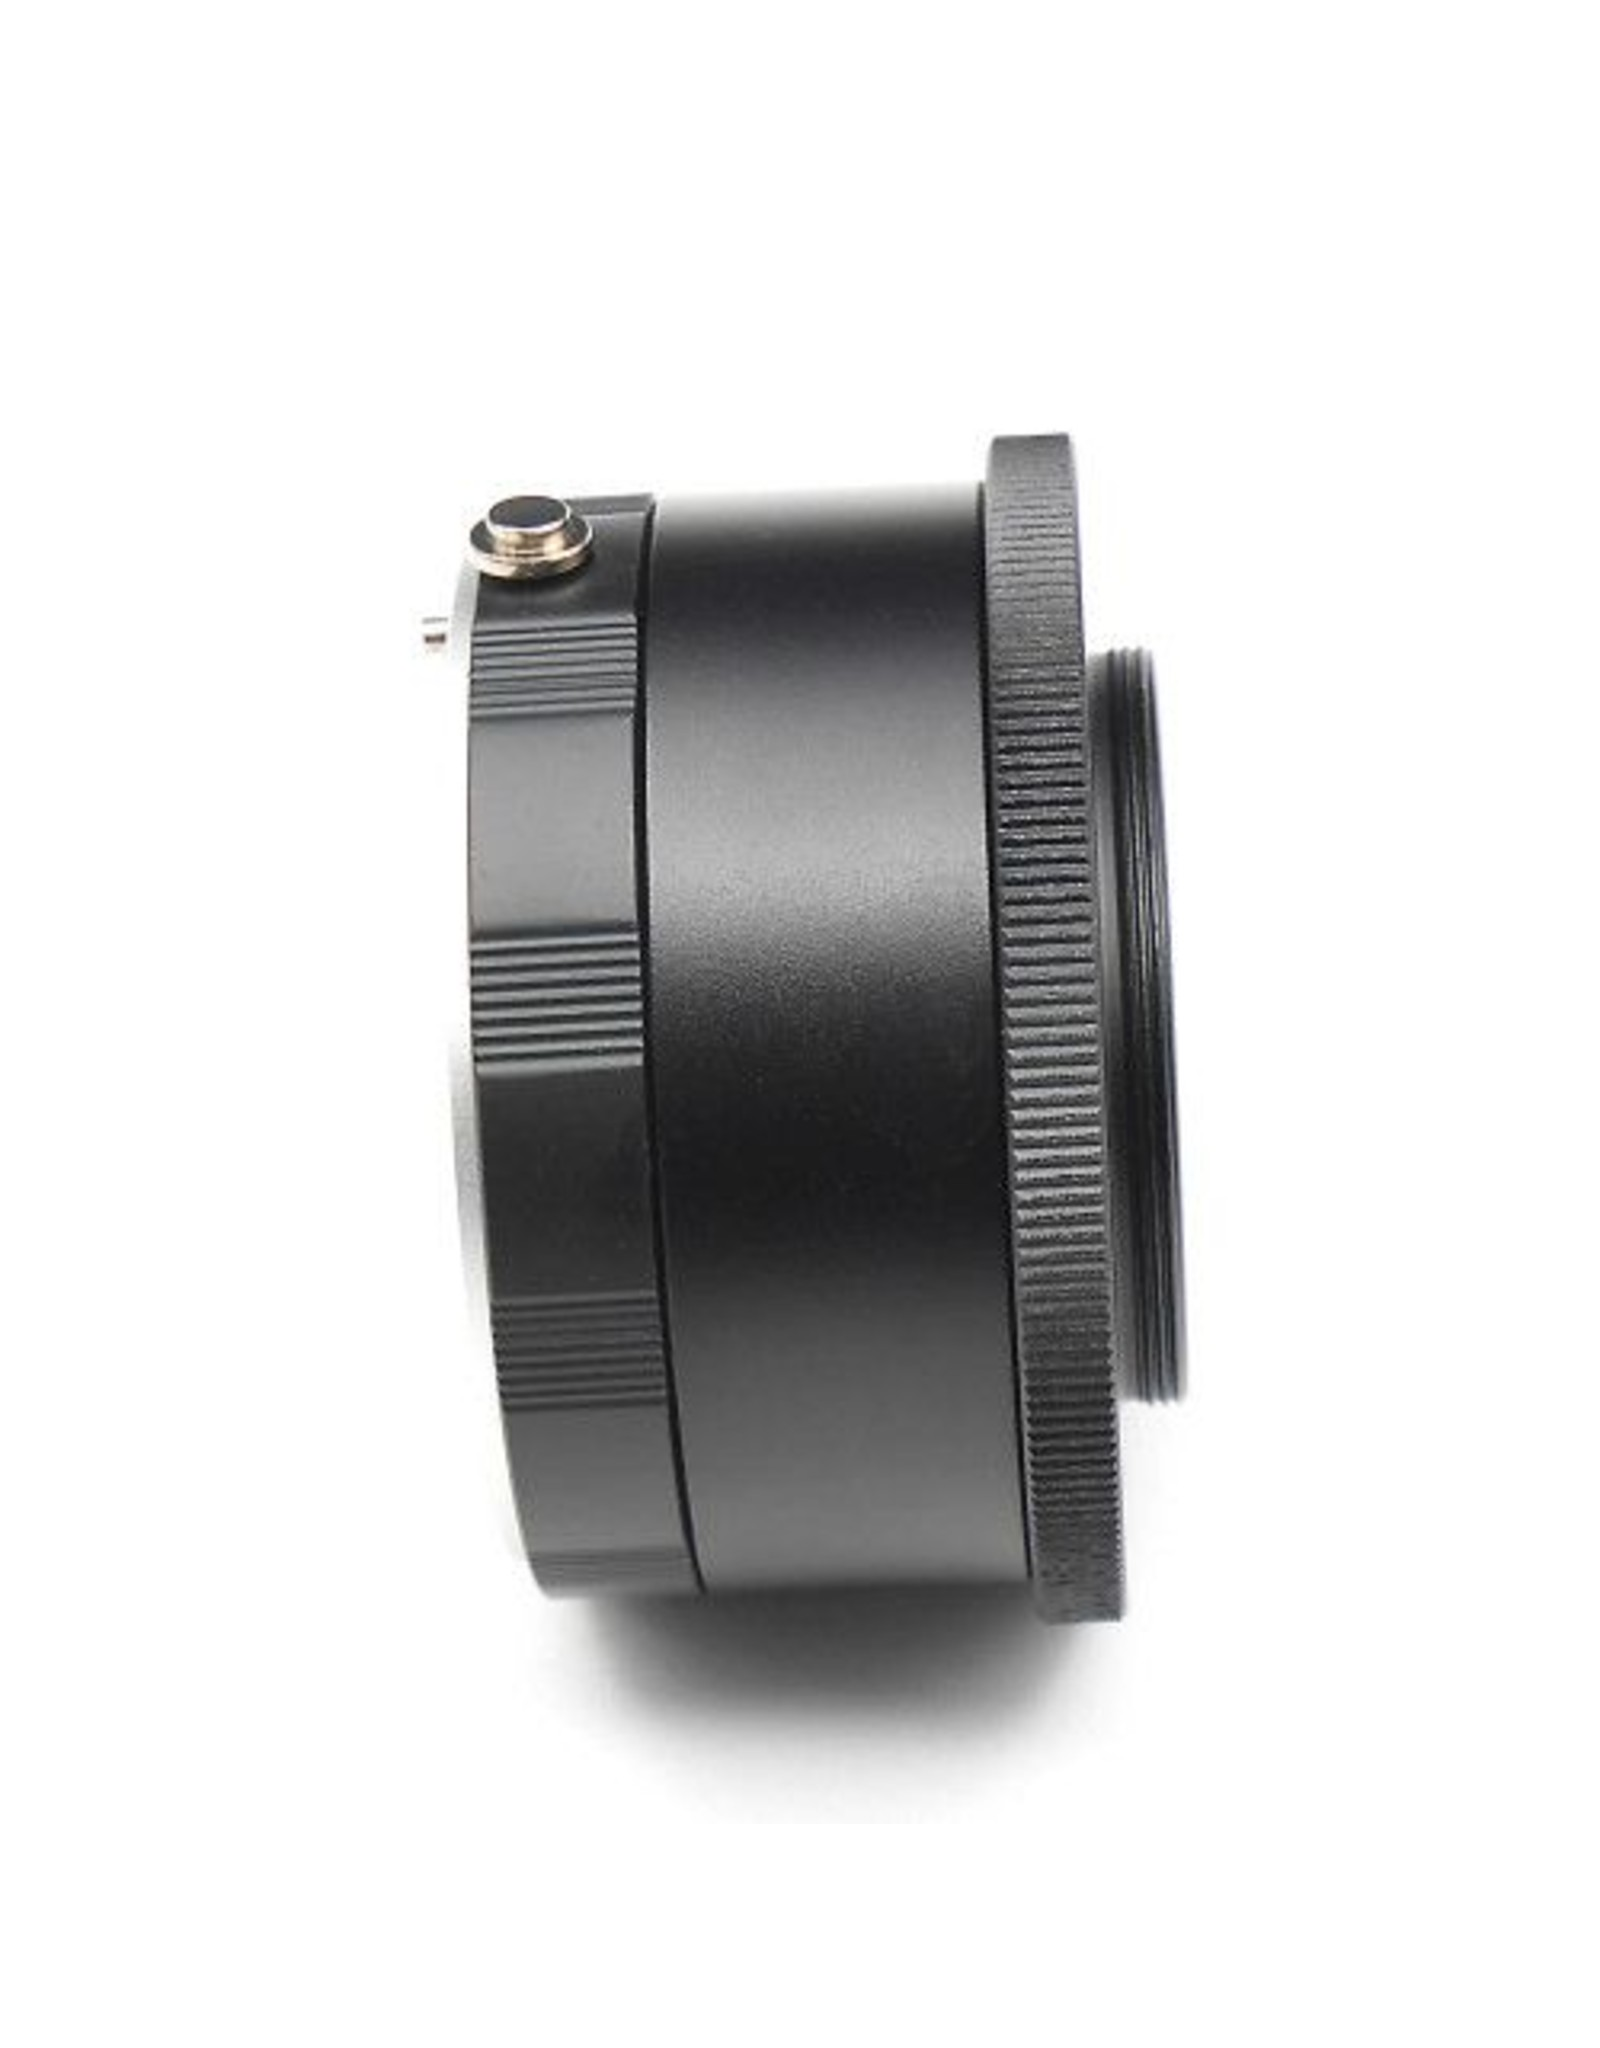 ZWO ZWO Nikon-T2 Adapter suitable for all ASI cameras